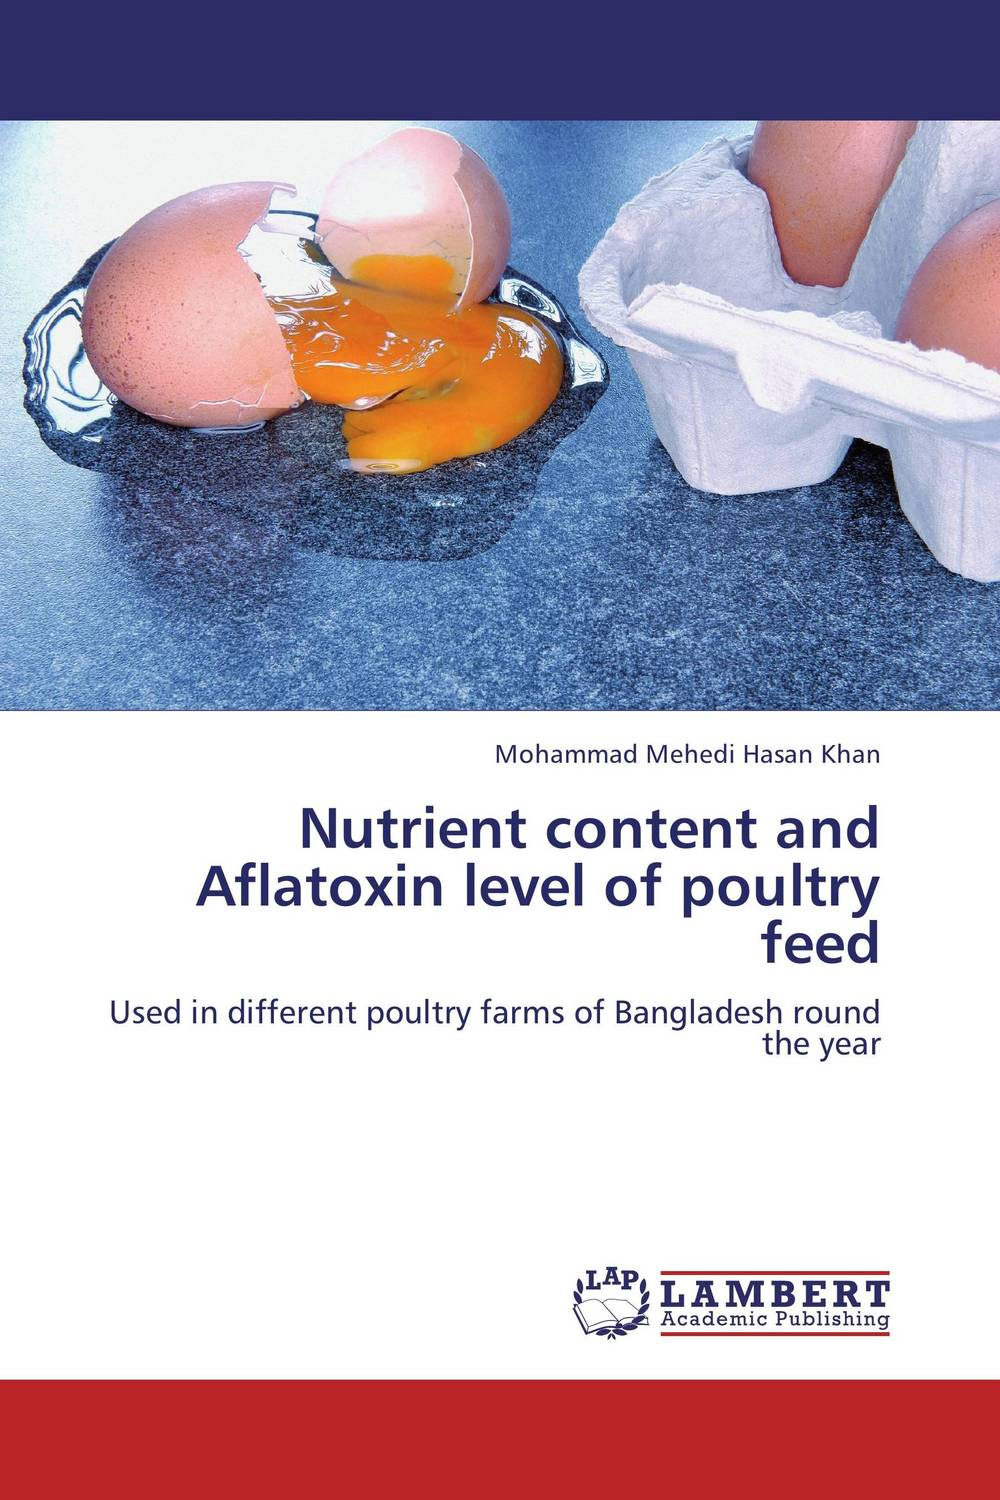 Nutrient content and Aflatoxin level of poultry feed estimating the quantity and quality of poultry litter in tamilnadu